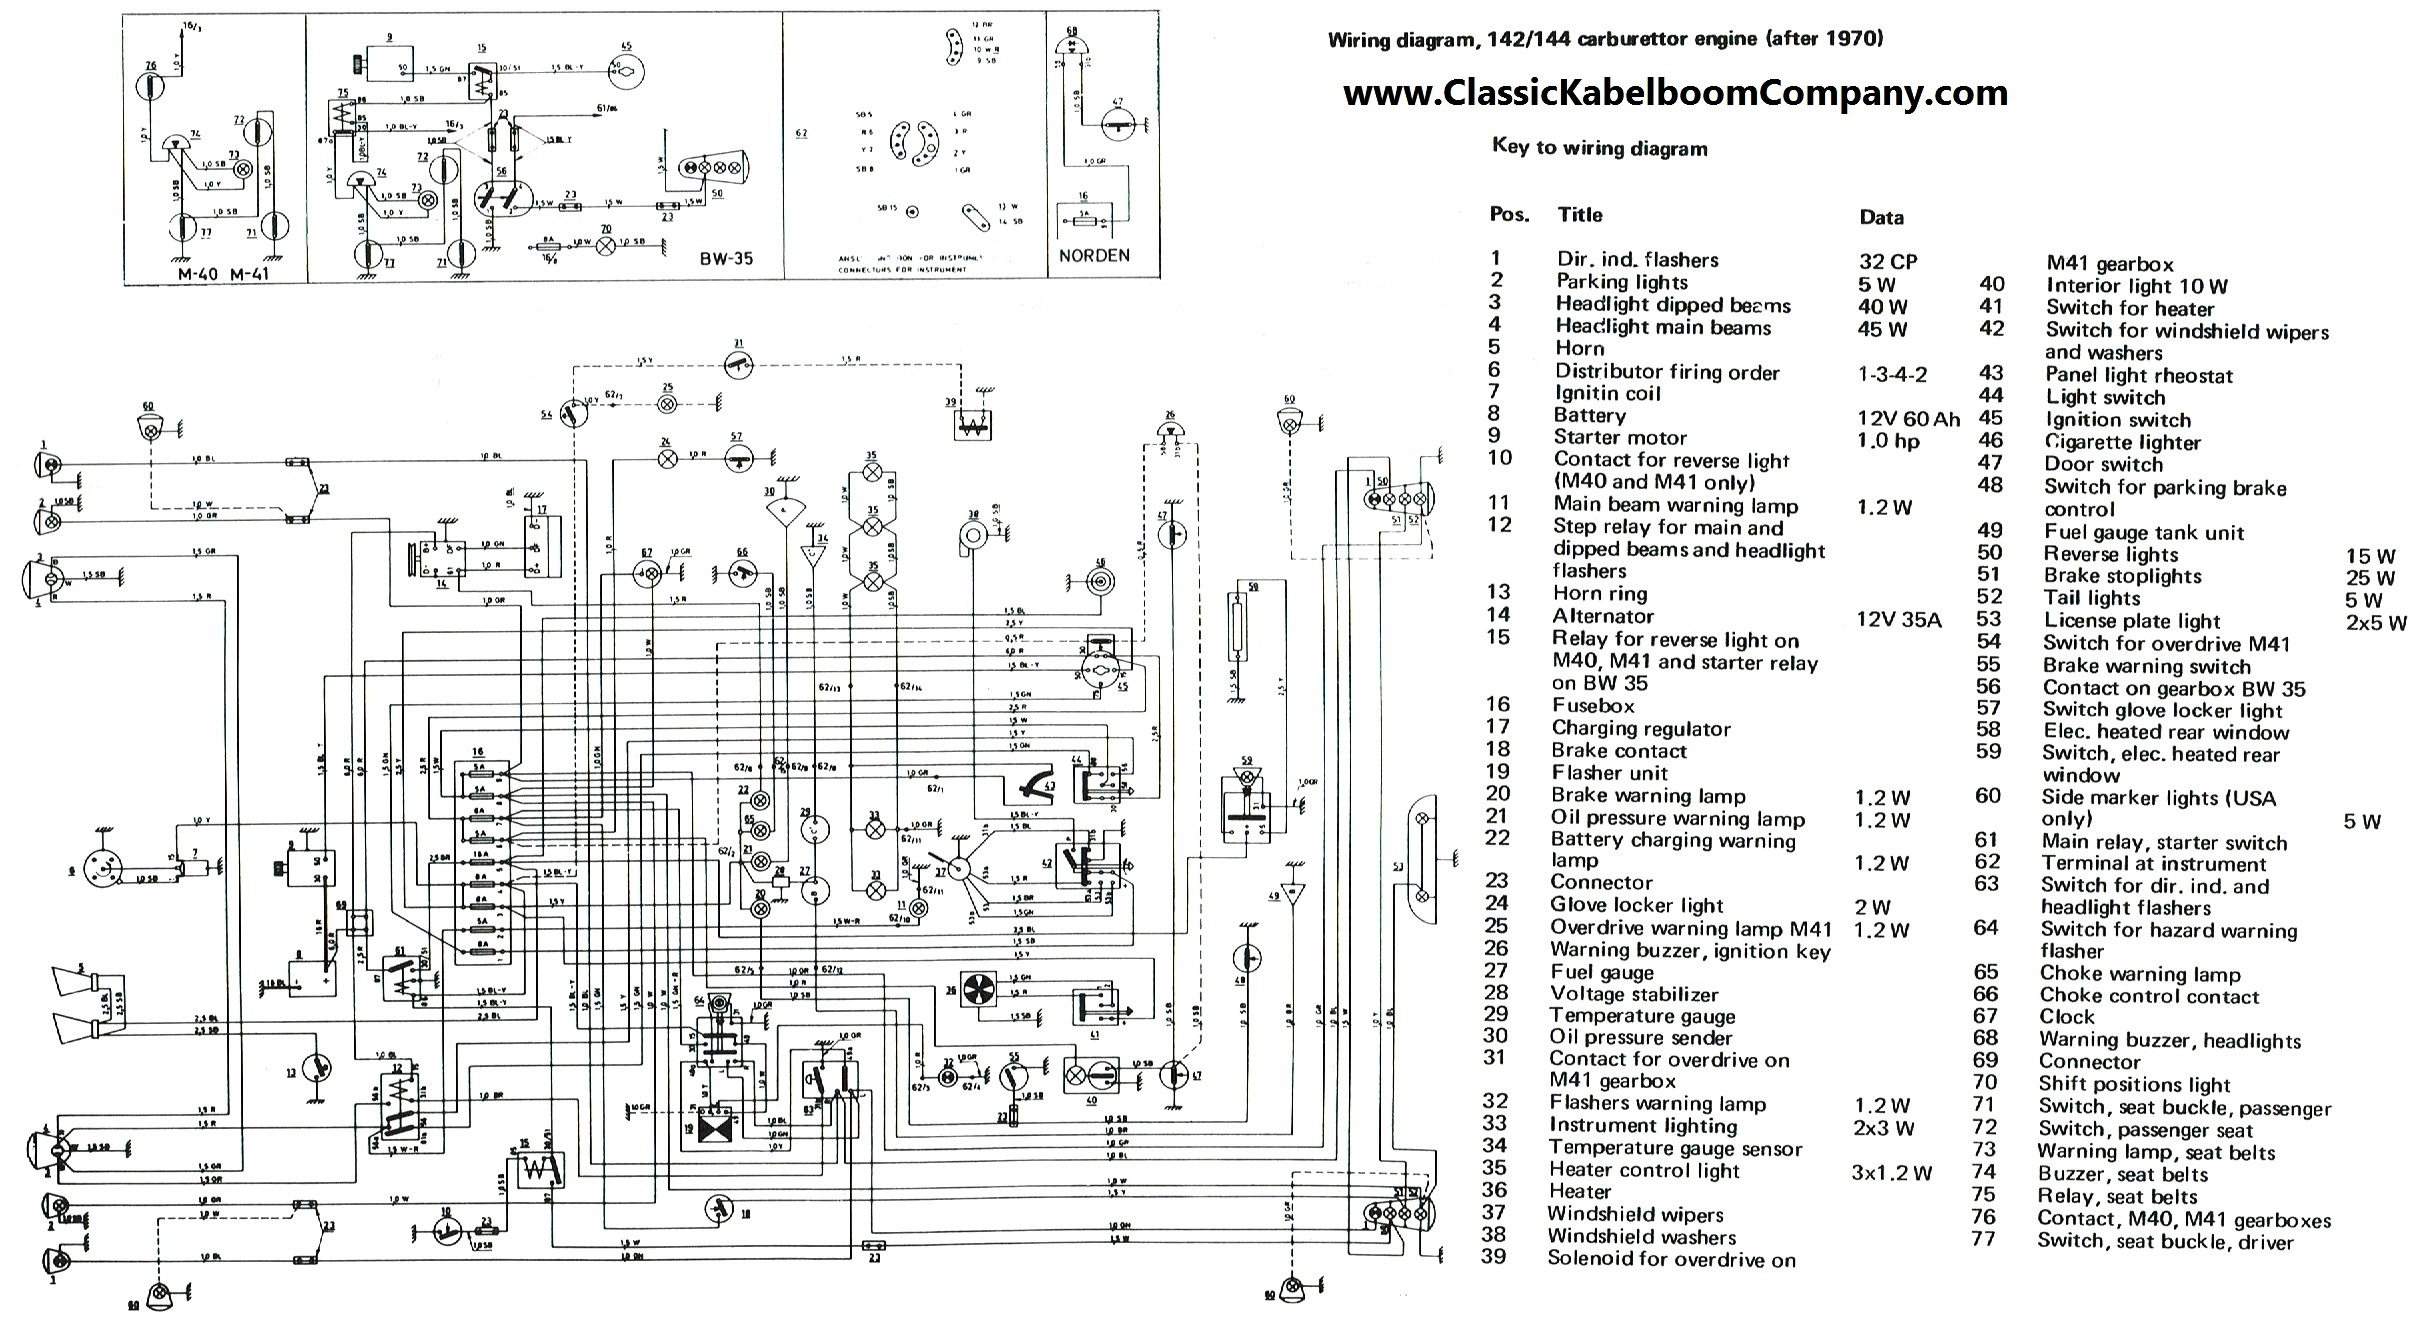 vol19?cdp=a 1971 volvo 142 wiring diagram 1971 wiring diagrams collection 1969 Volvo 142 at bakdesigns.co